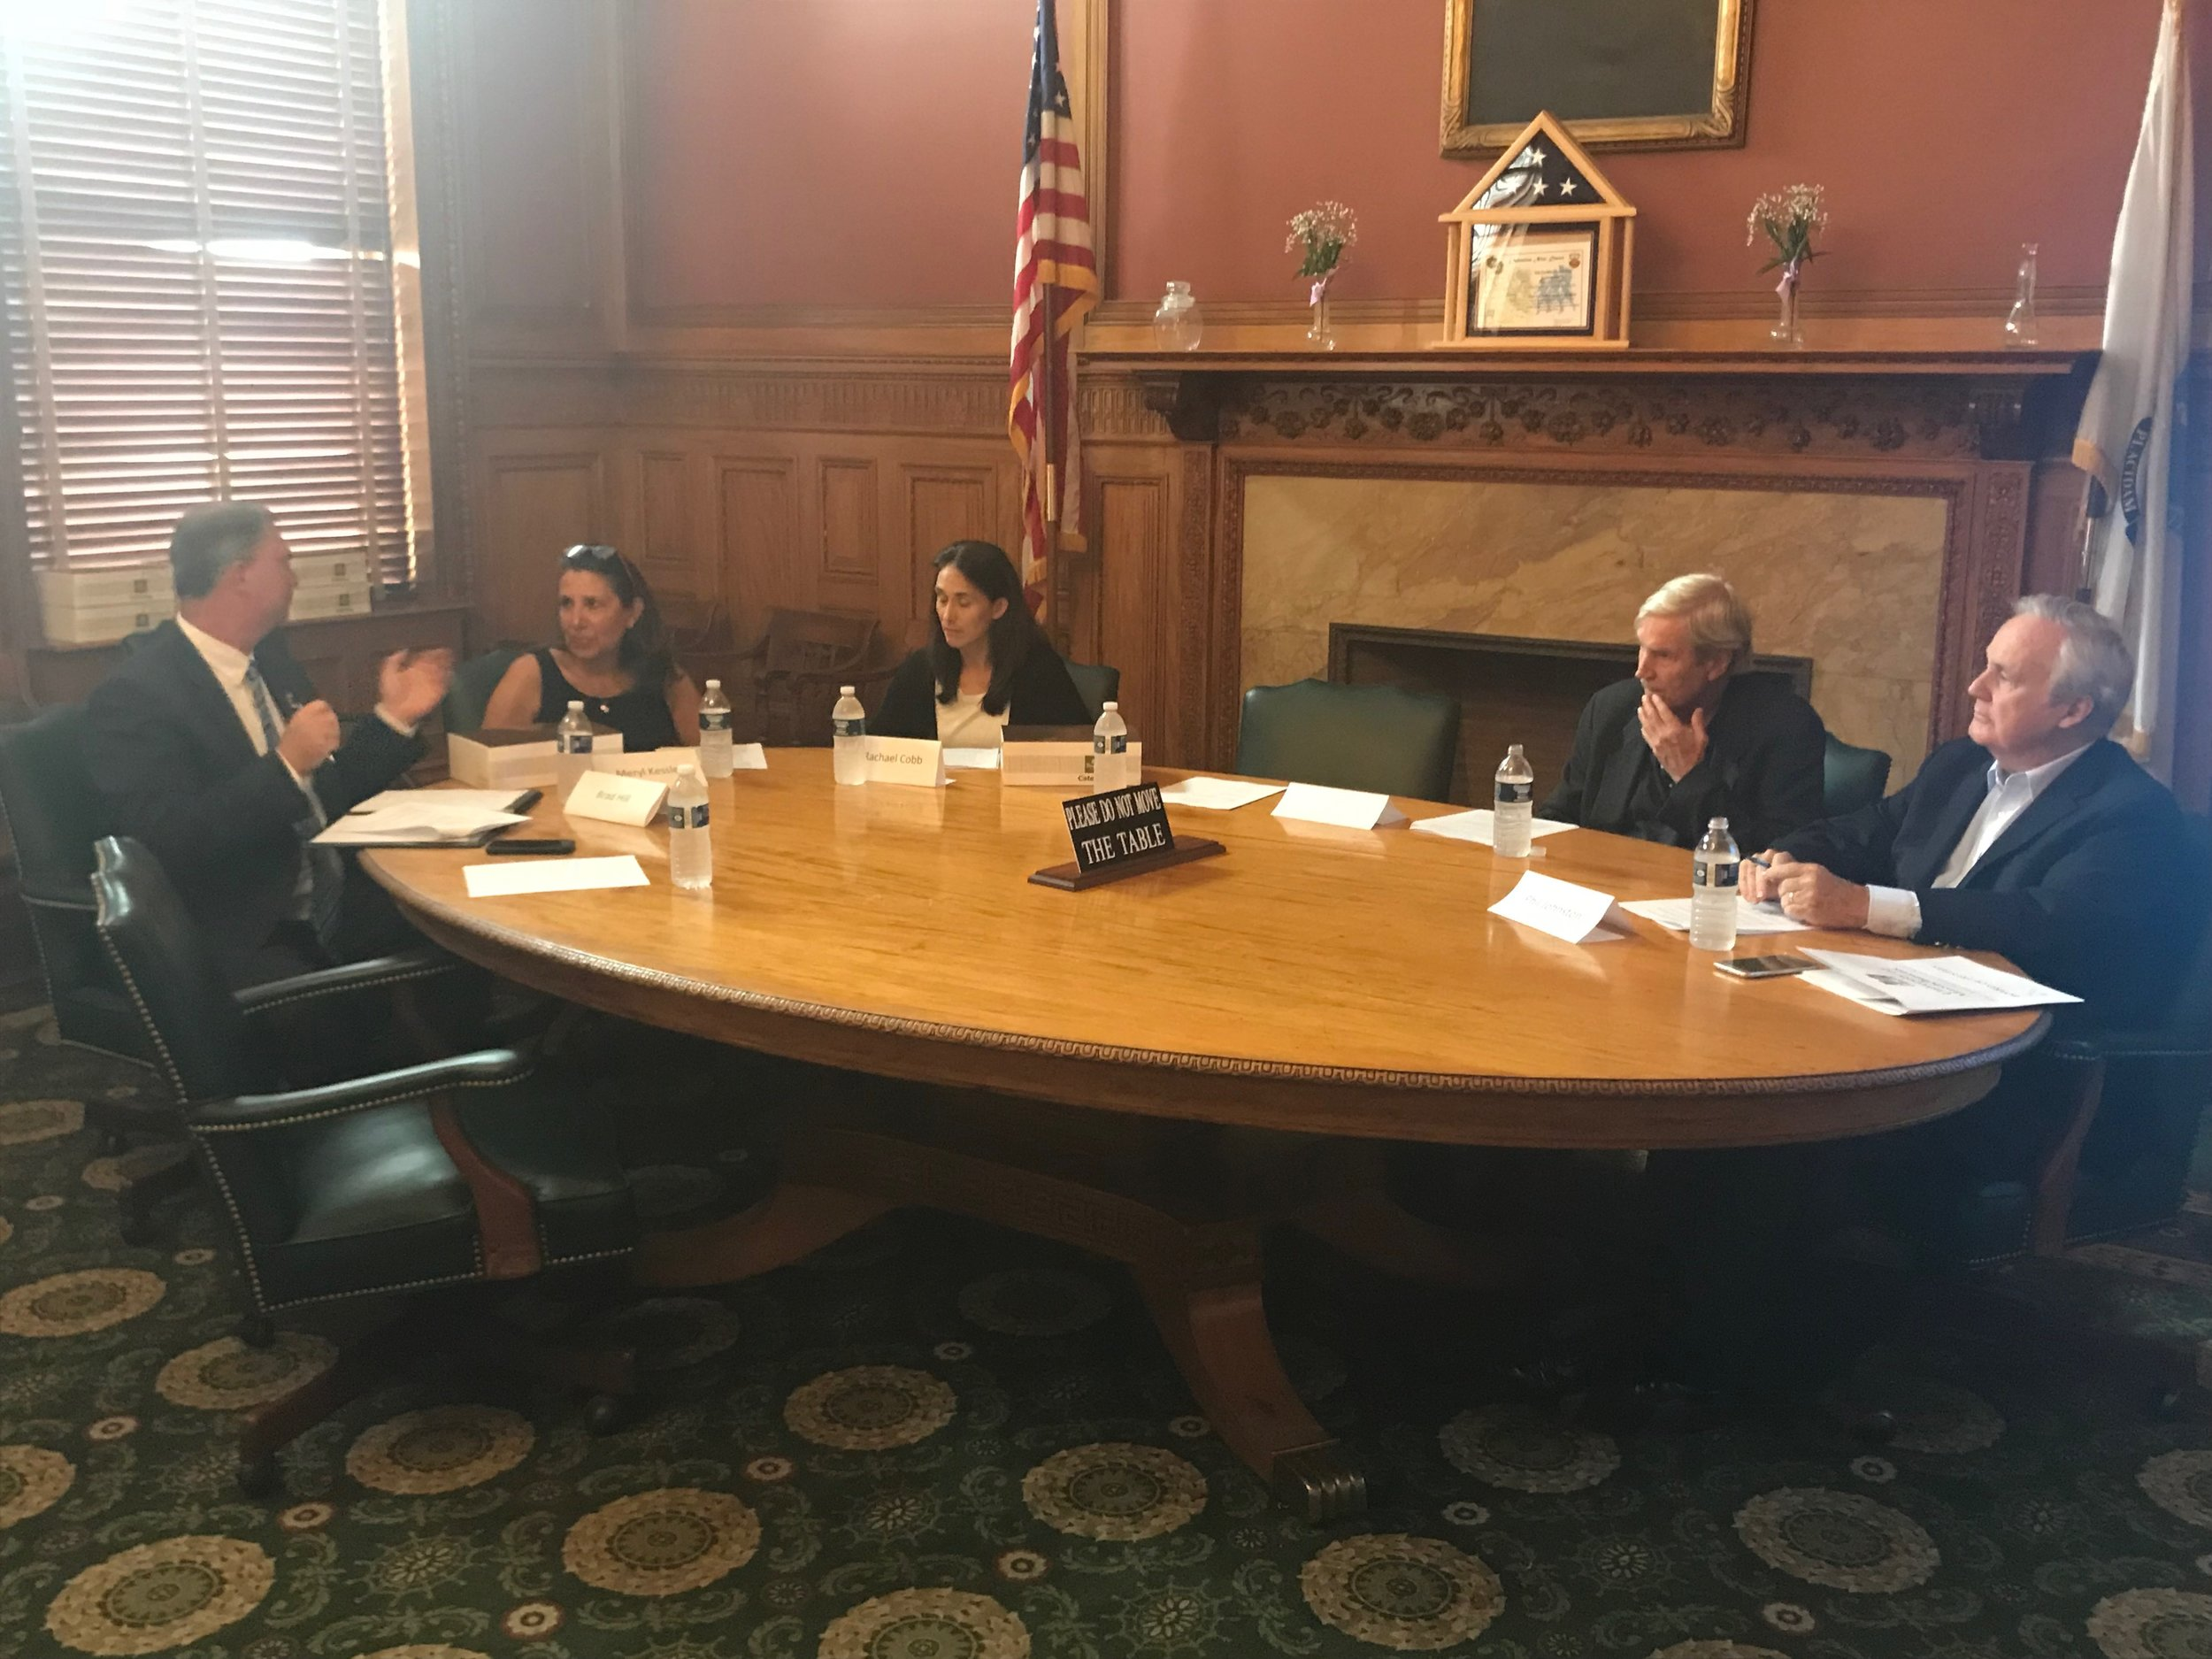 The 2018 CIR Advisory Board members unanimously selected Question 1, An Initiative Petition for a Law Relative to Patient Safety and Hospital Transparency, for citizen review during a meeting at the Massachusetts State House on July 17, 2018.